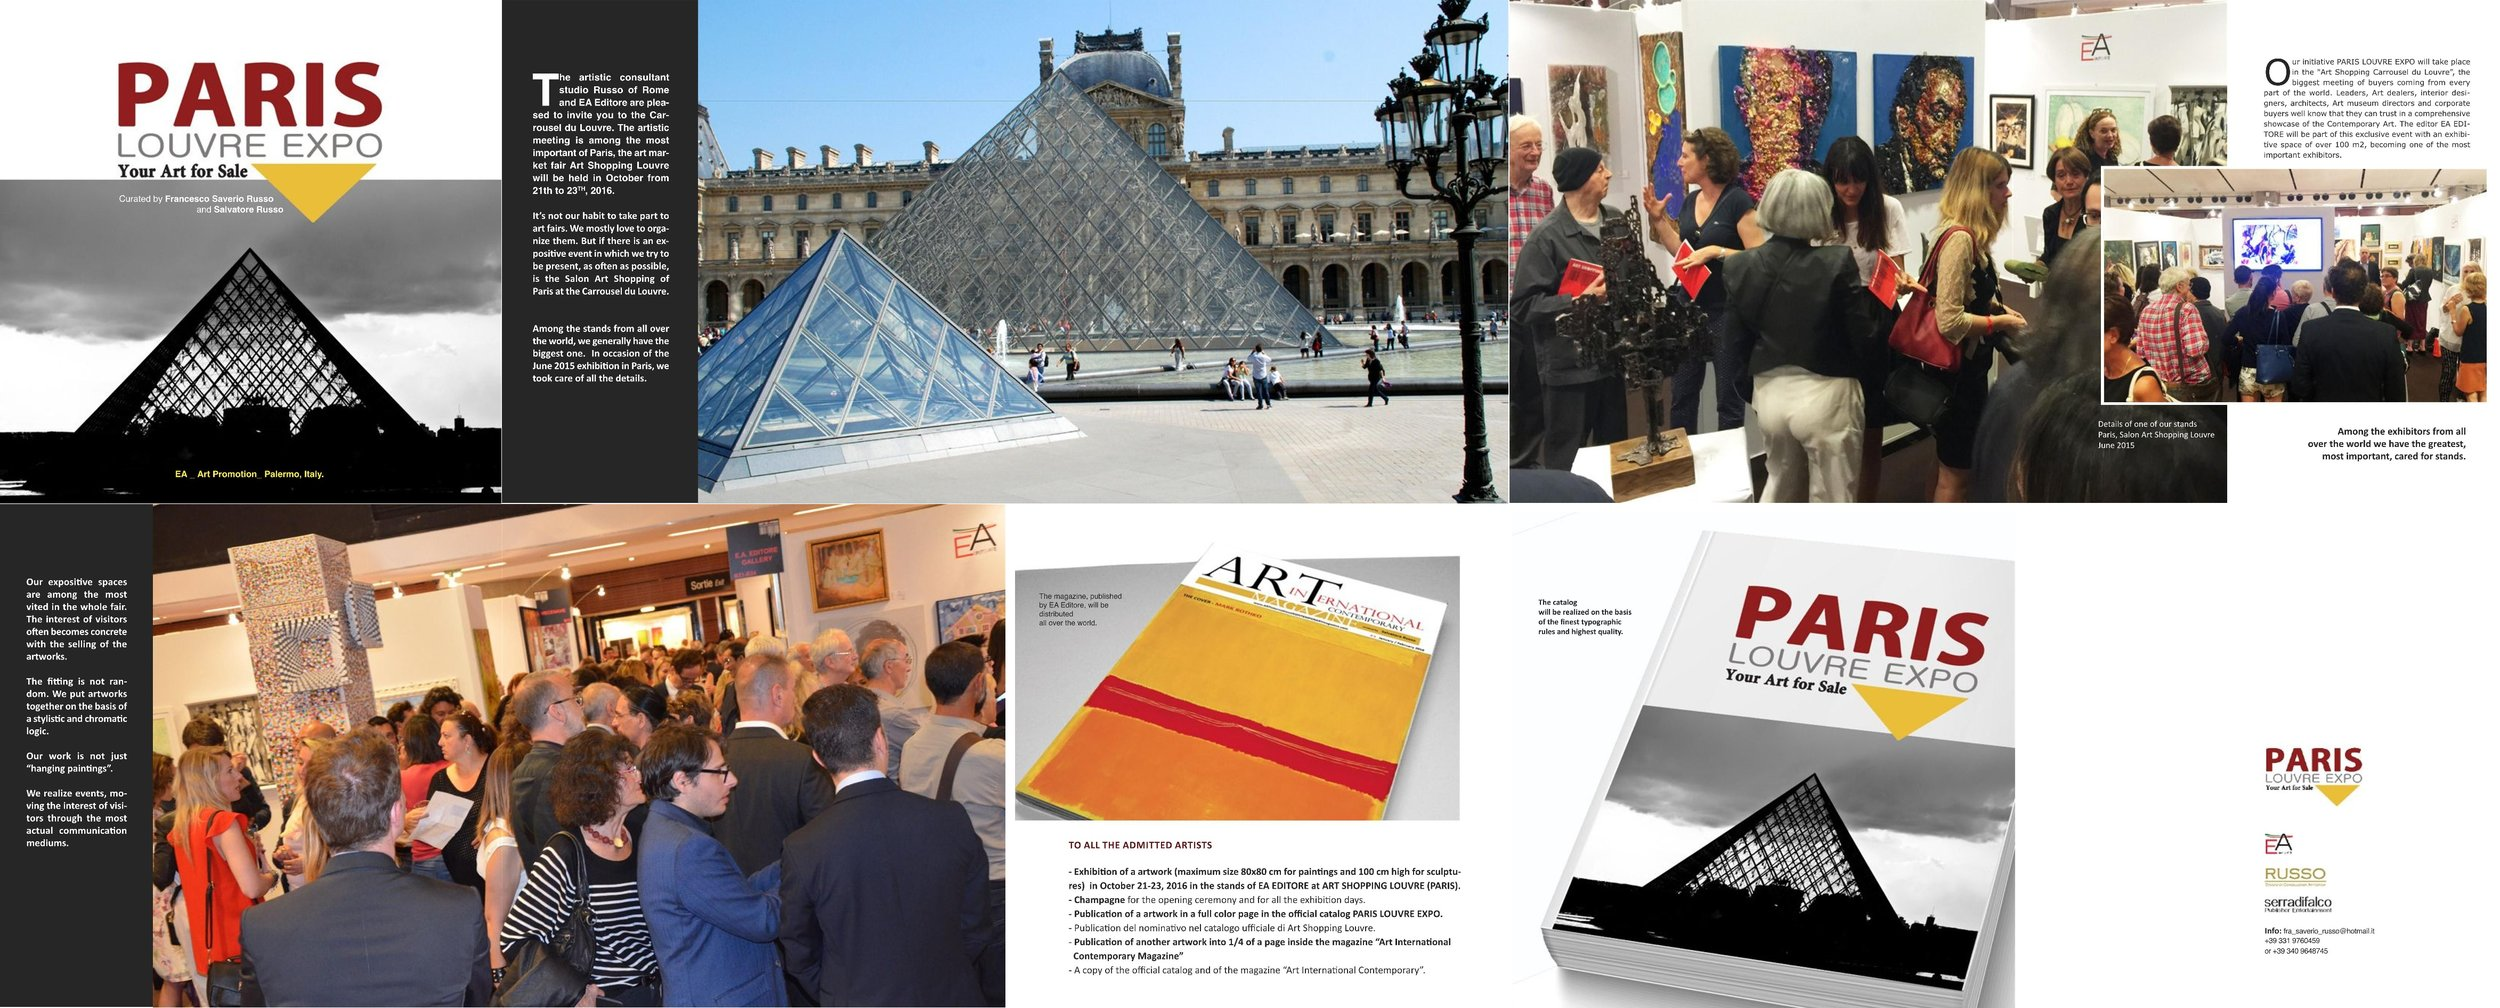 Presentation PARIS LOUVRE EXPO - Your Art for SALE.jpg